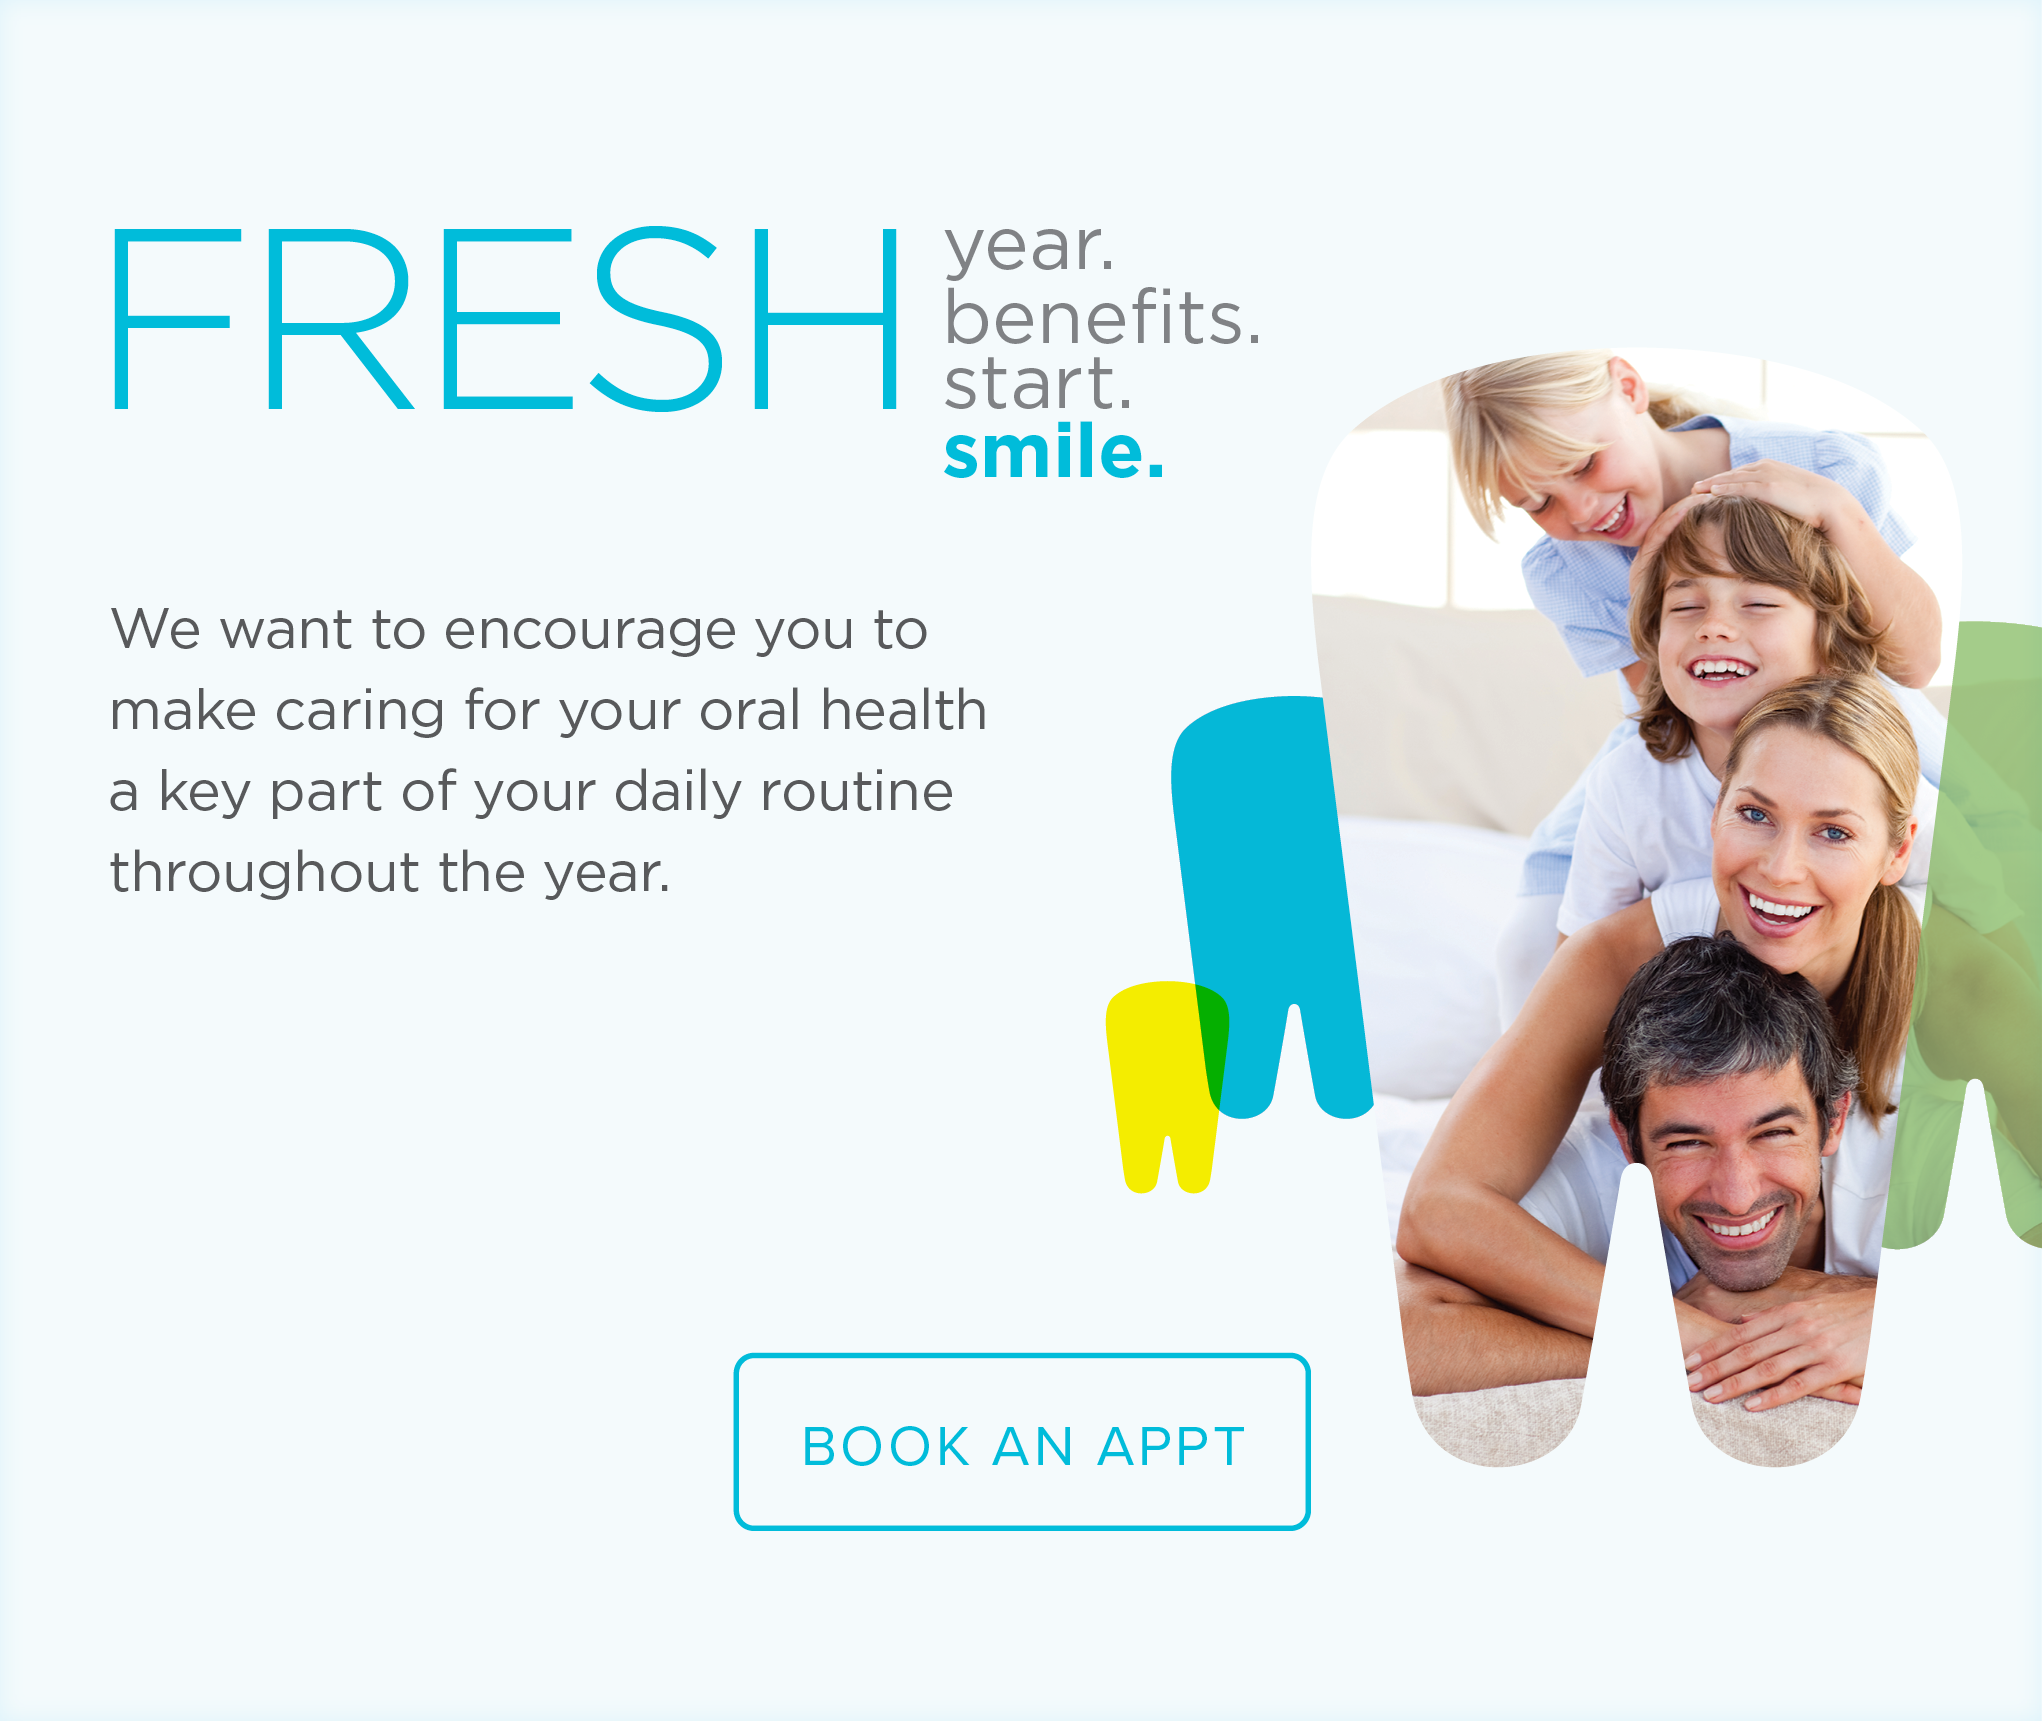 San Marcos Dental Group and Orthodontics - Make the Most of Your Benefits